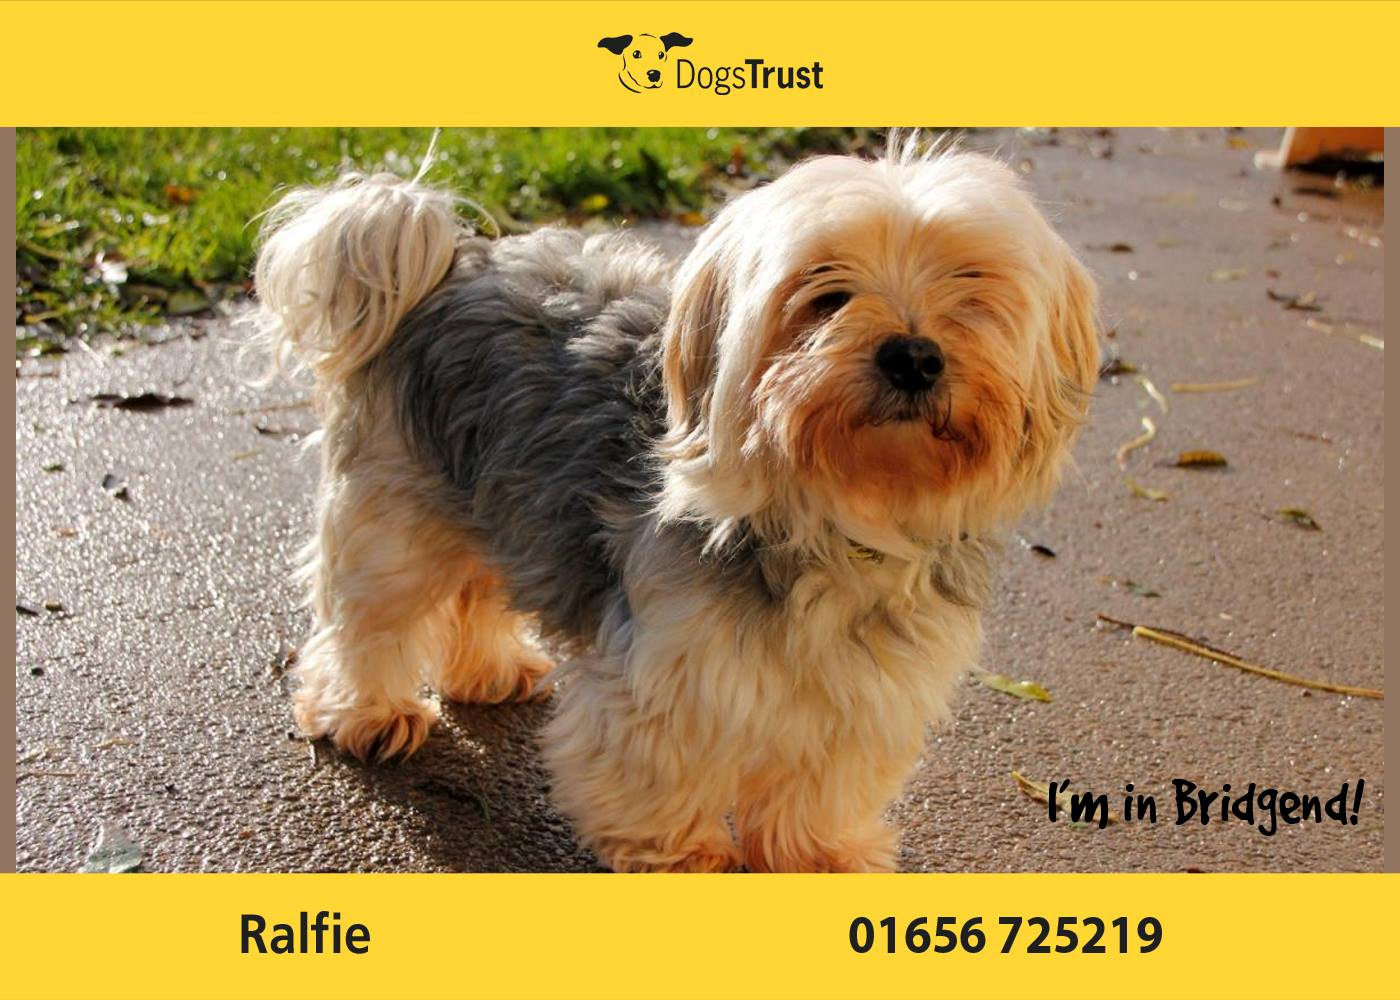 Ralfie Here From Dogs Trust Bridgend Is A Sensitive Chap And He Does Like To Have His Own Way He Loves A Good Run Off Lead In The Fie Dogs Dogs Trust